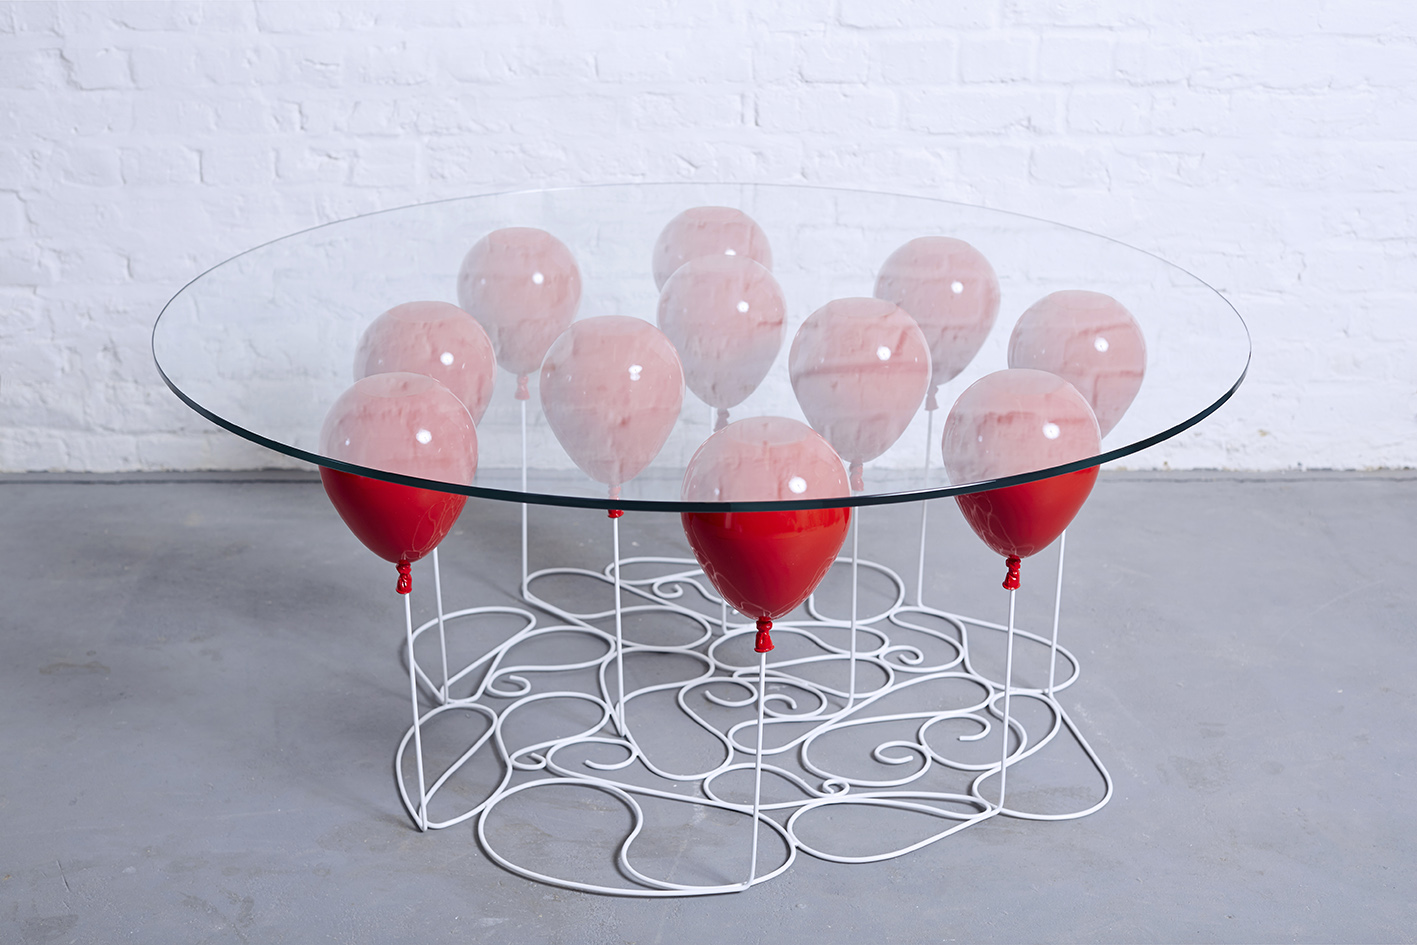 Still Life 3d Wallpaper Helium Balloons Hold The Table Art People Gallery